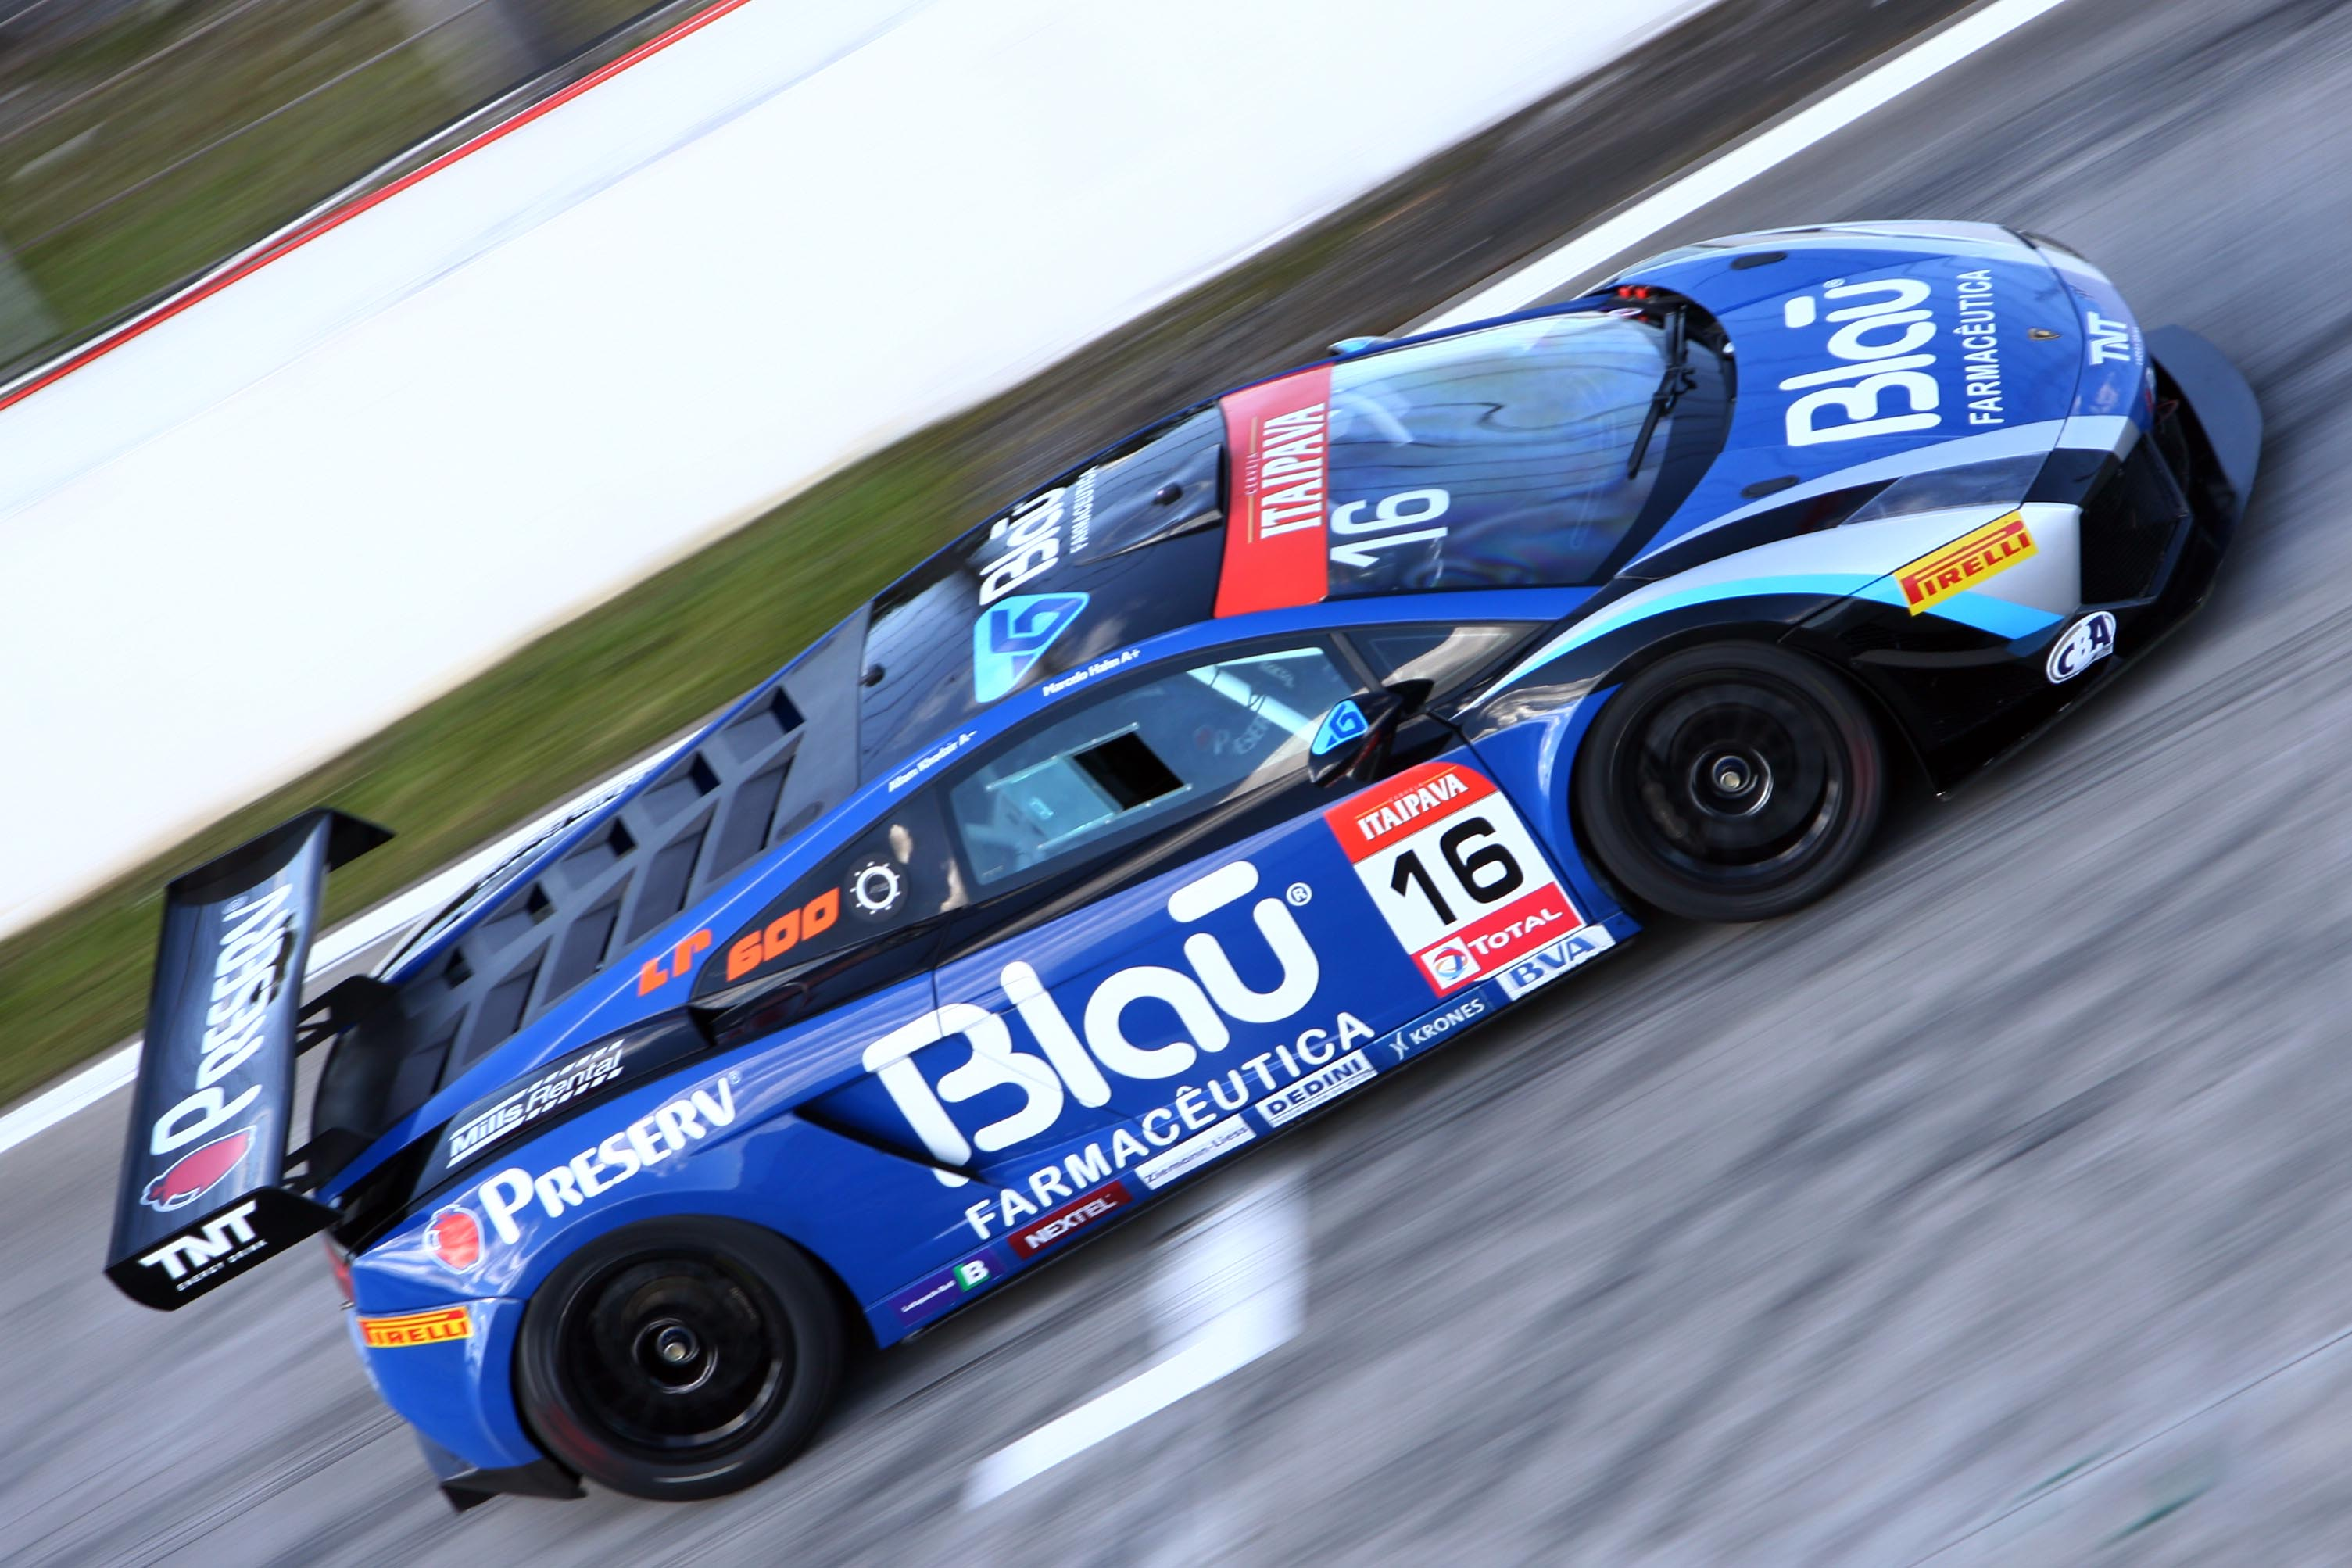 Blau Motorsport Secure Double Win In Brazilian Gt With Lamborghini